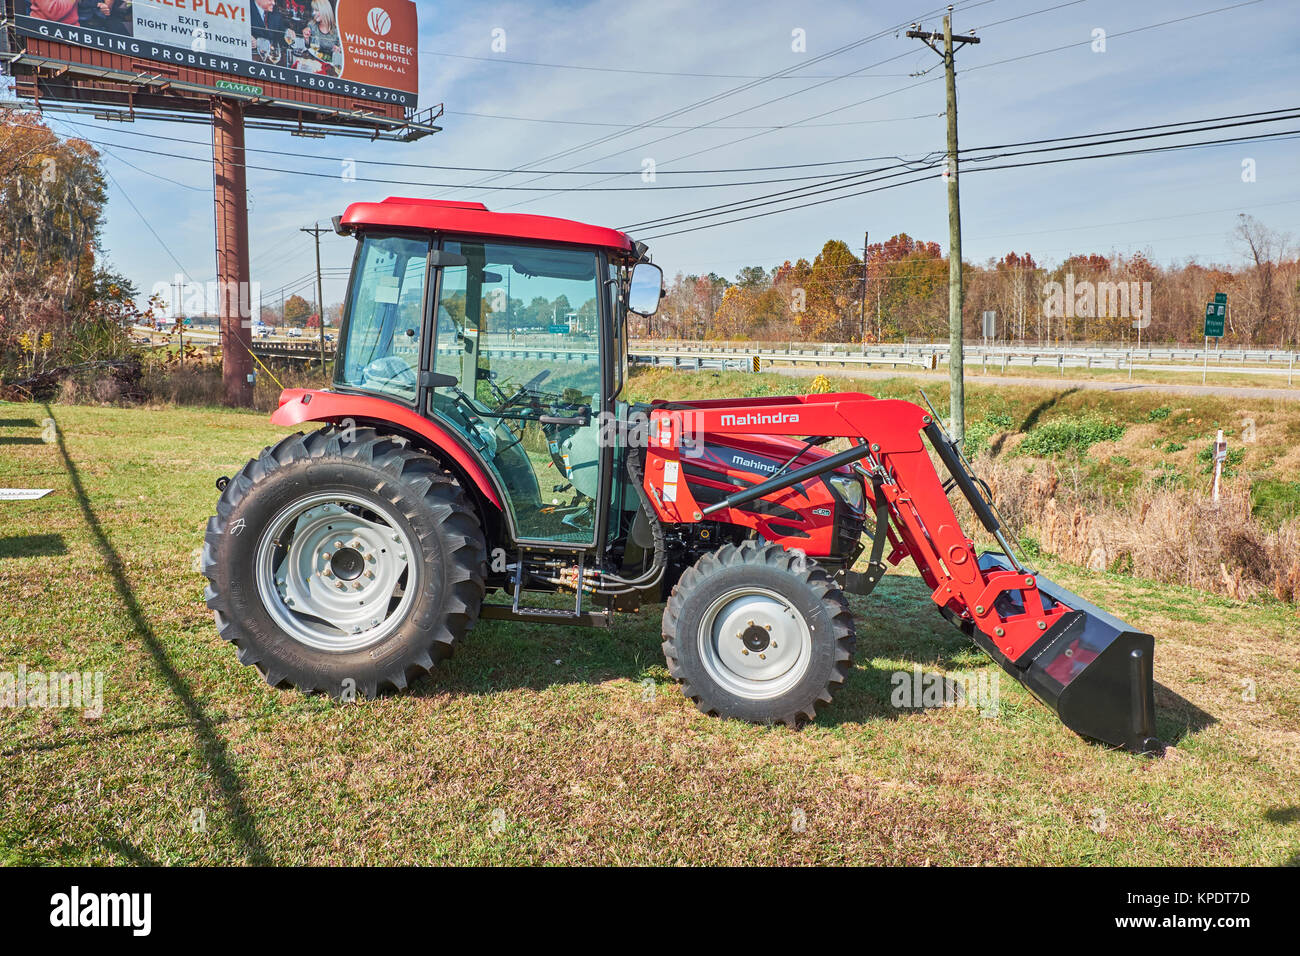 Brand new Mahindra 2565 CL shuttle cab red tractor sitting in front of the dealership with optional front loader. - Stock Image